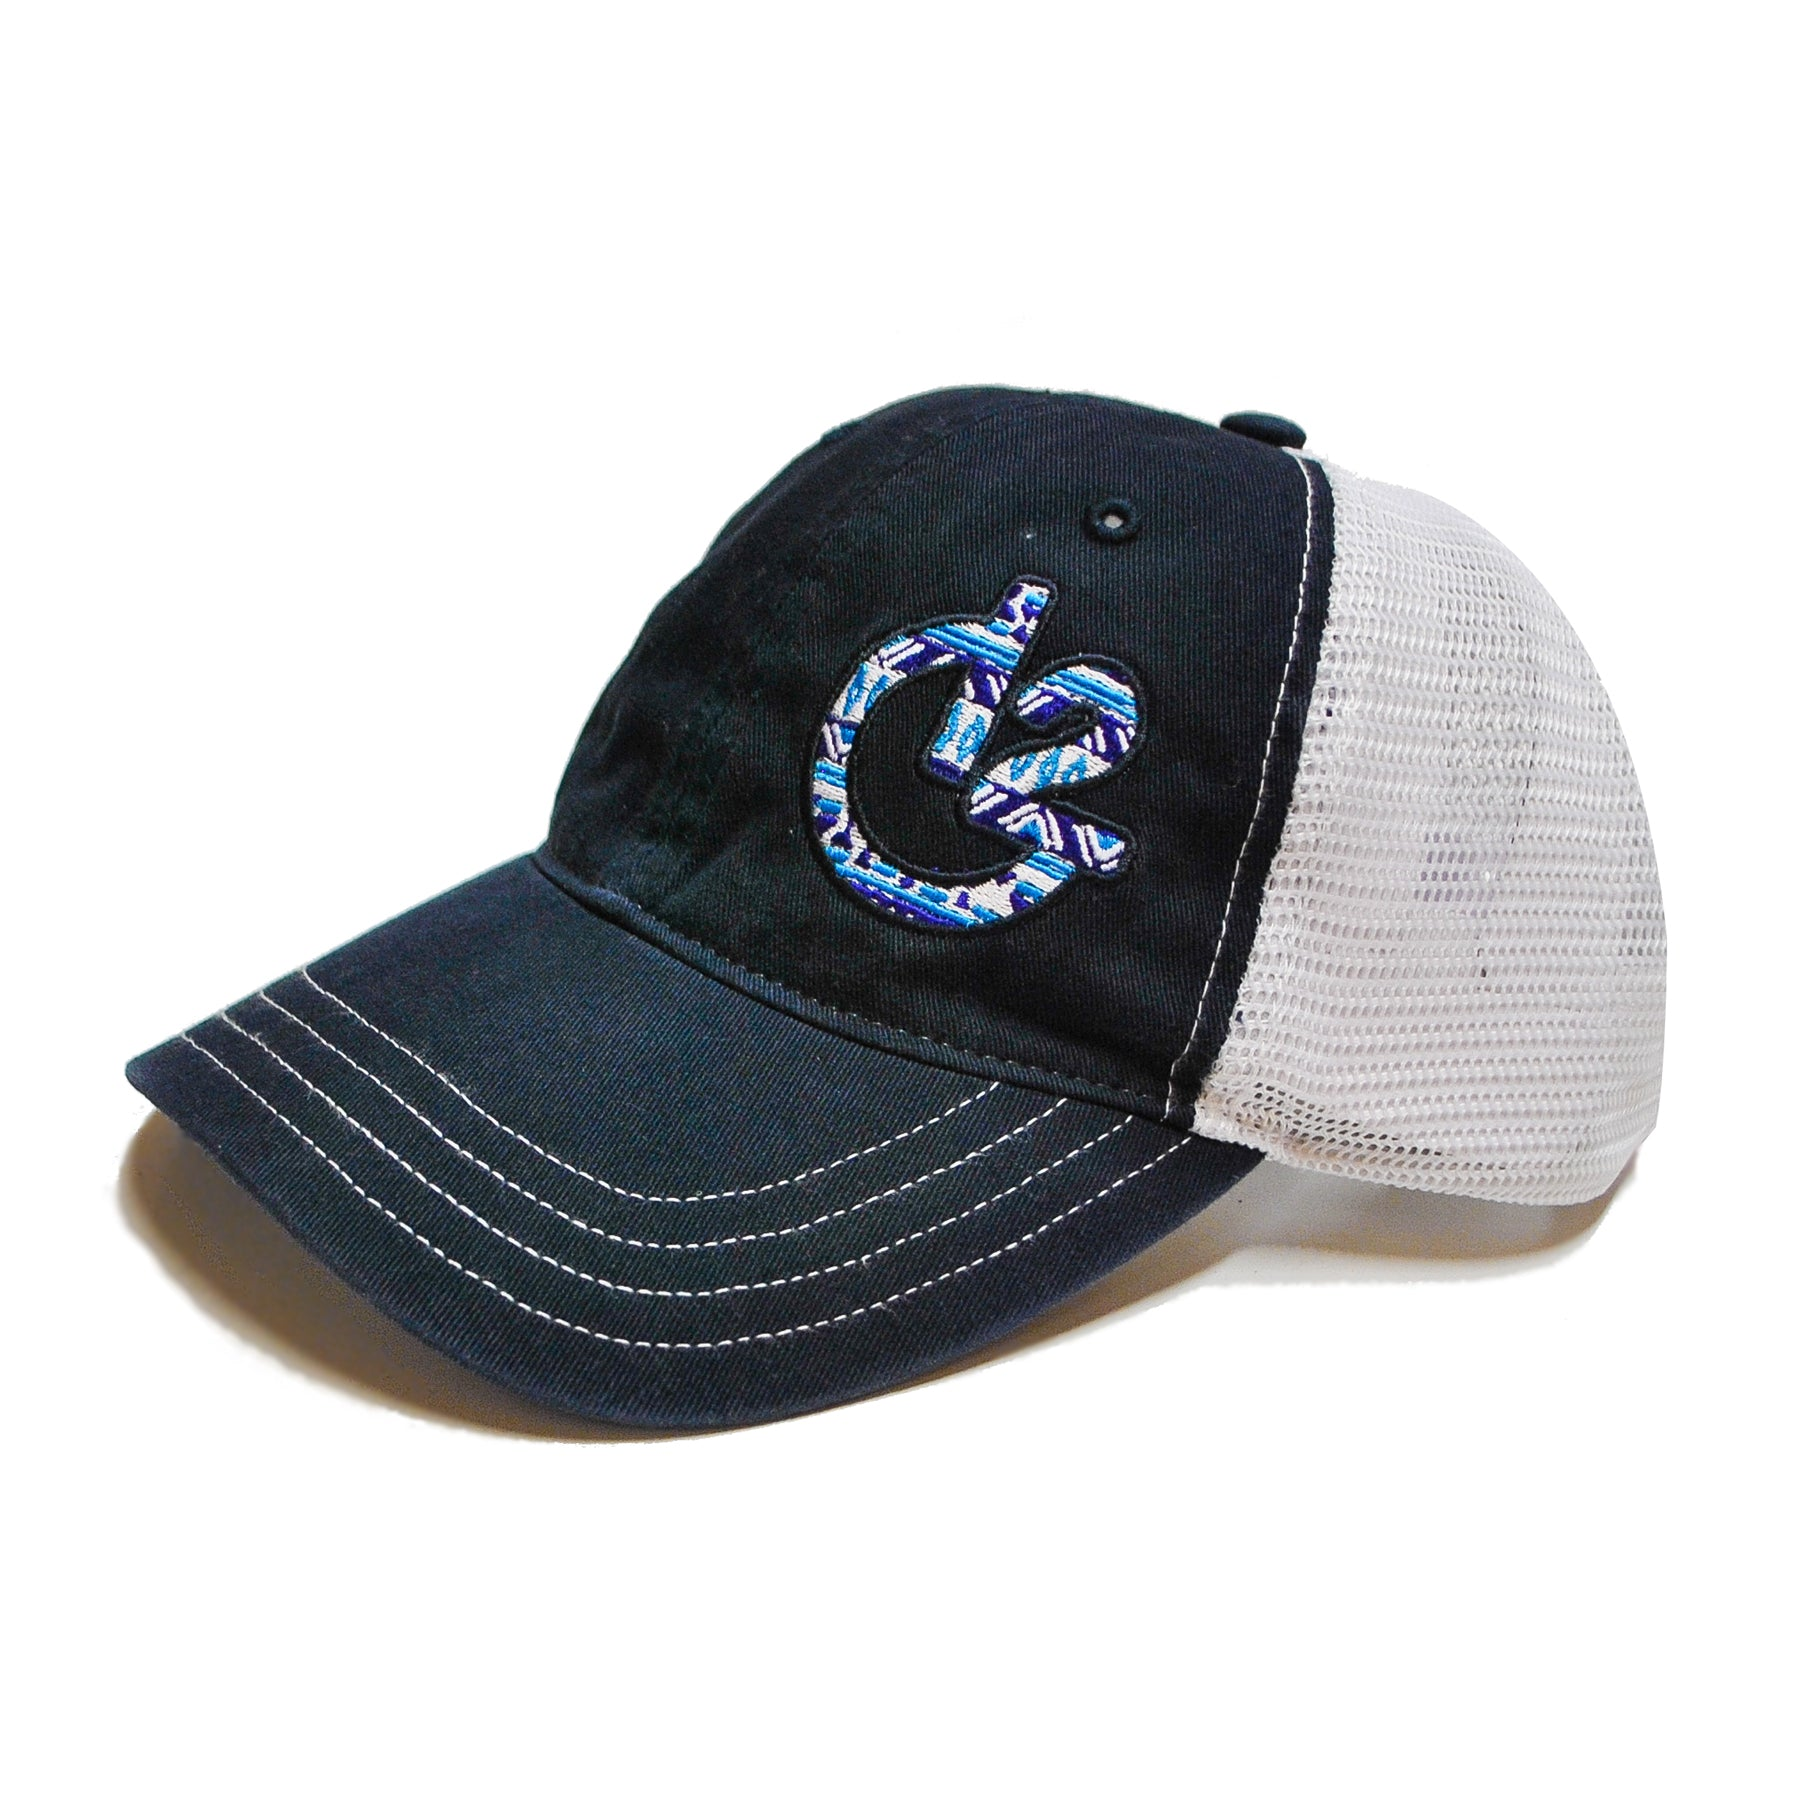 12 Gauge Ranch Aztec Navy and White Low Profile Baseball Hat, Hats, 12 Gauge Ranch, 12 Gauge Ranch 12 Gauge Ranch